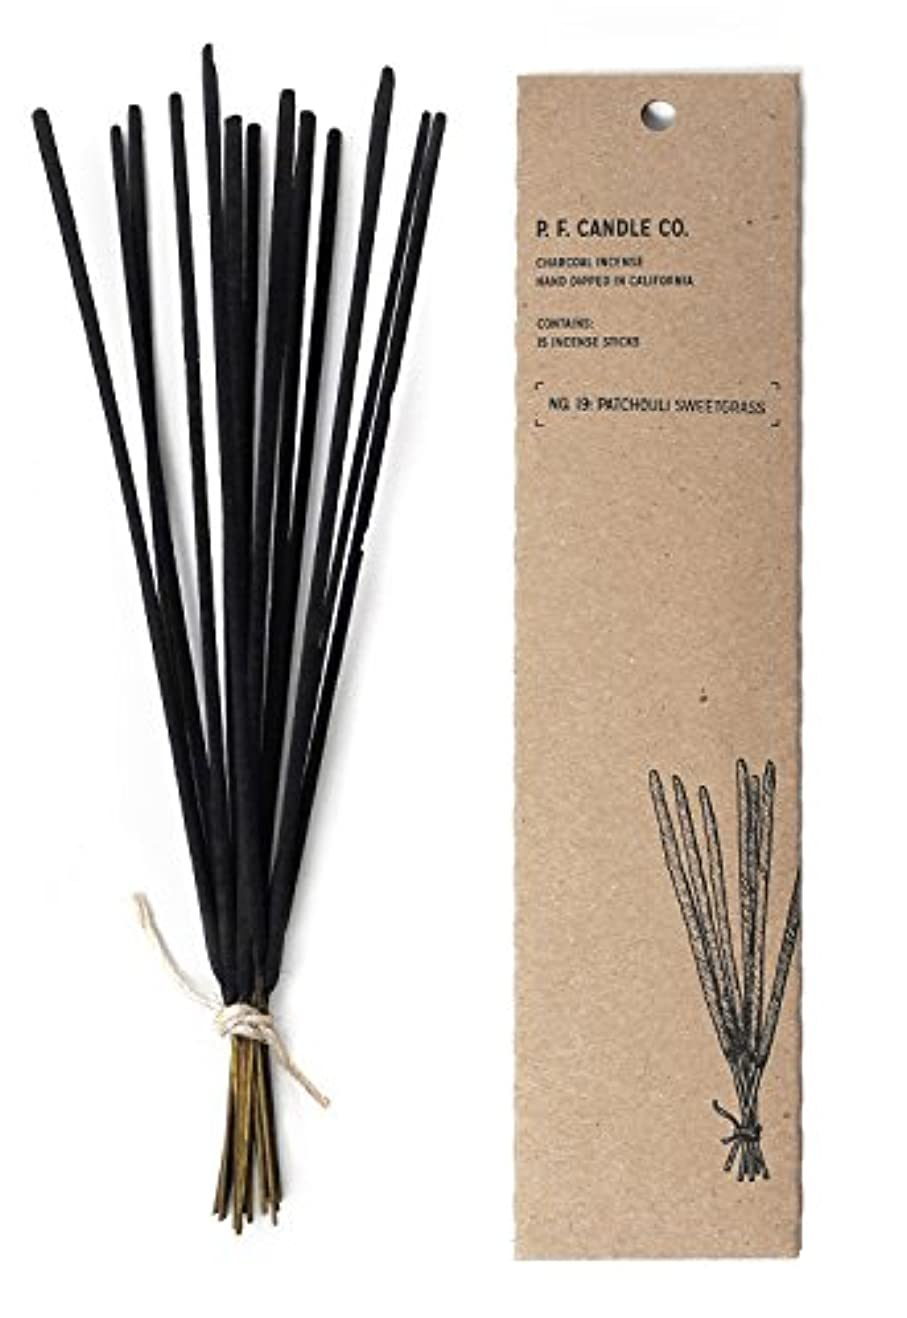 究極の仮定スワップp.f. Candle Co。 – No。19 : Patchouli Sweetgrass Incense 2-Pack